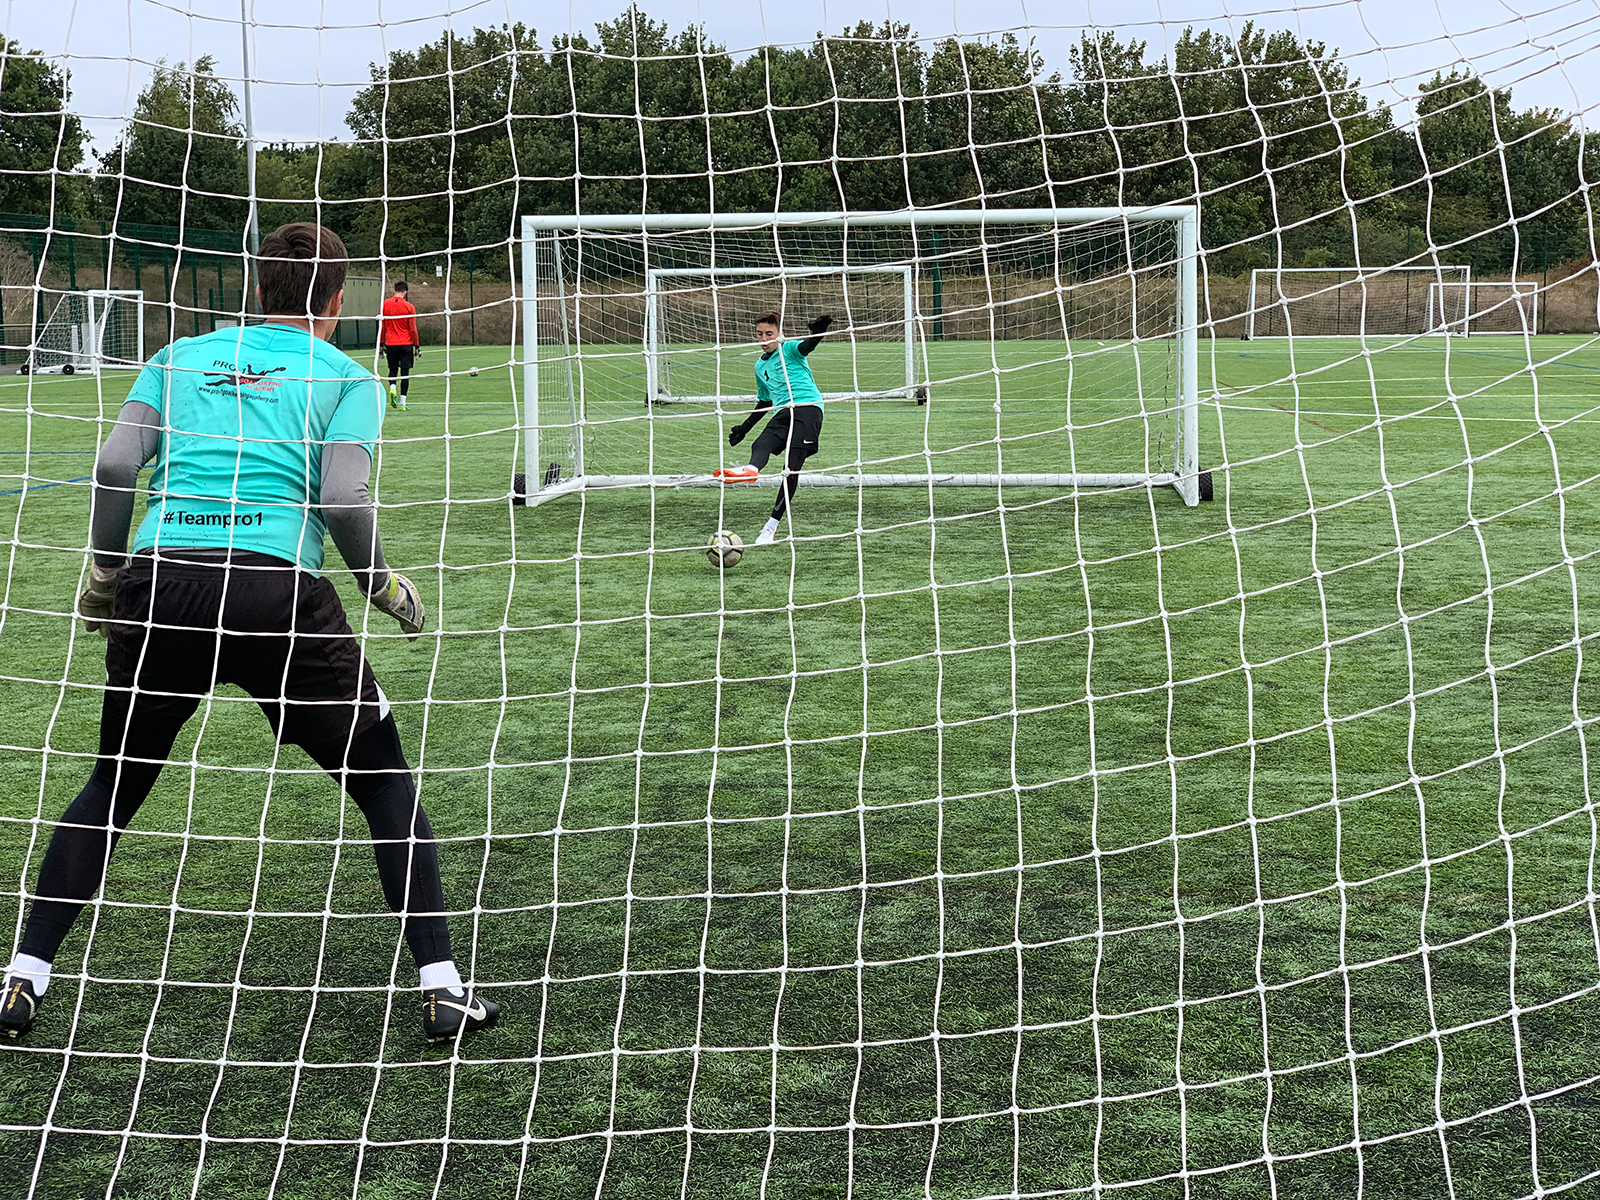 🔥🔥Pro-1 College Goalkeepers 🔥🔥